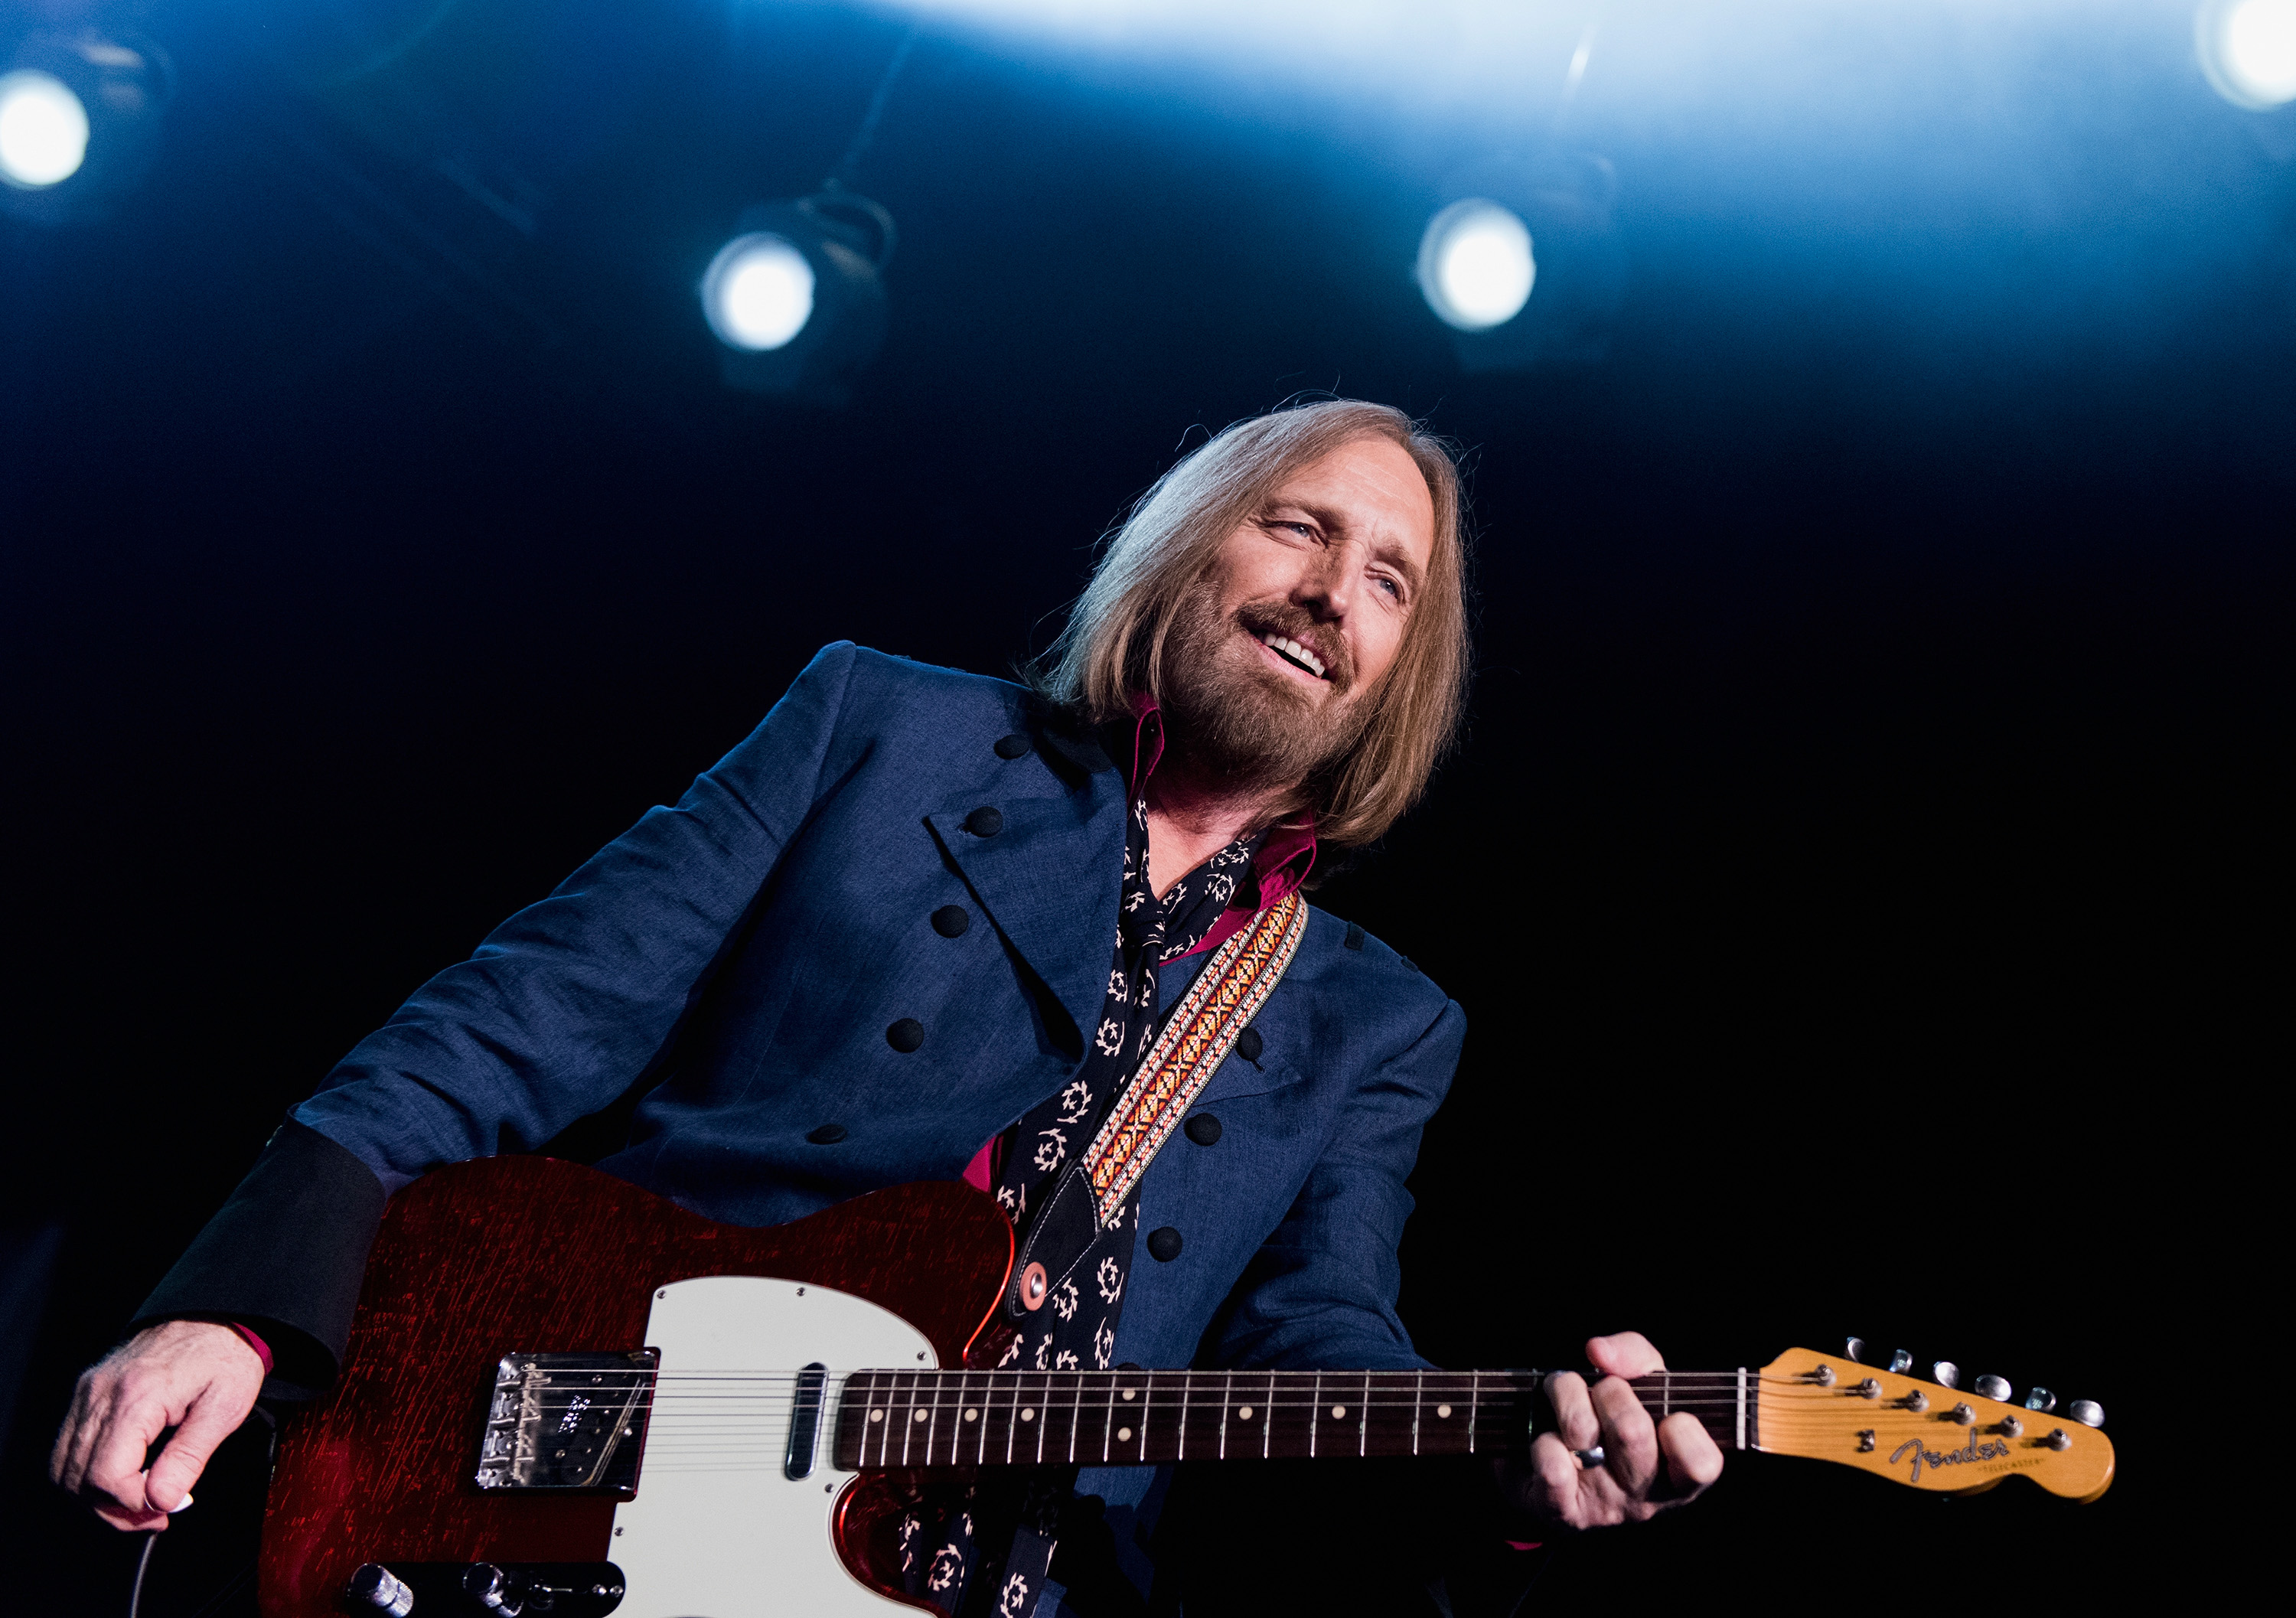 Tom Petty on Sam Smith Settlement: 'No Hard Feelings. These Things Happen'